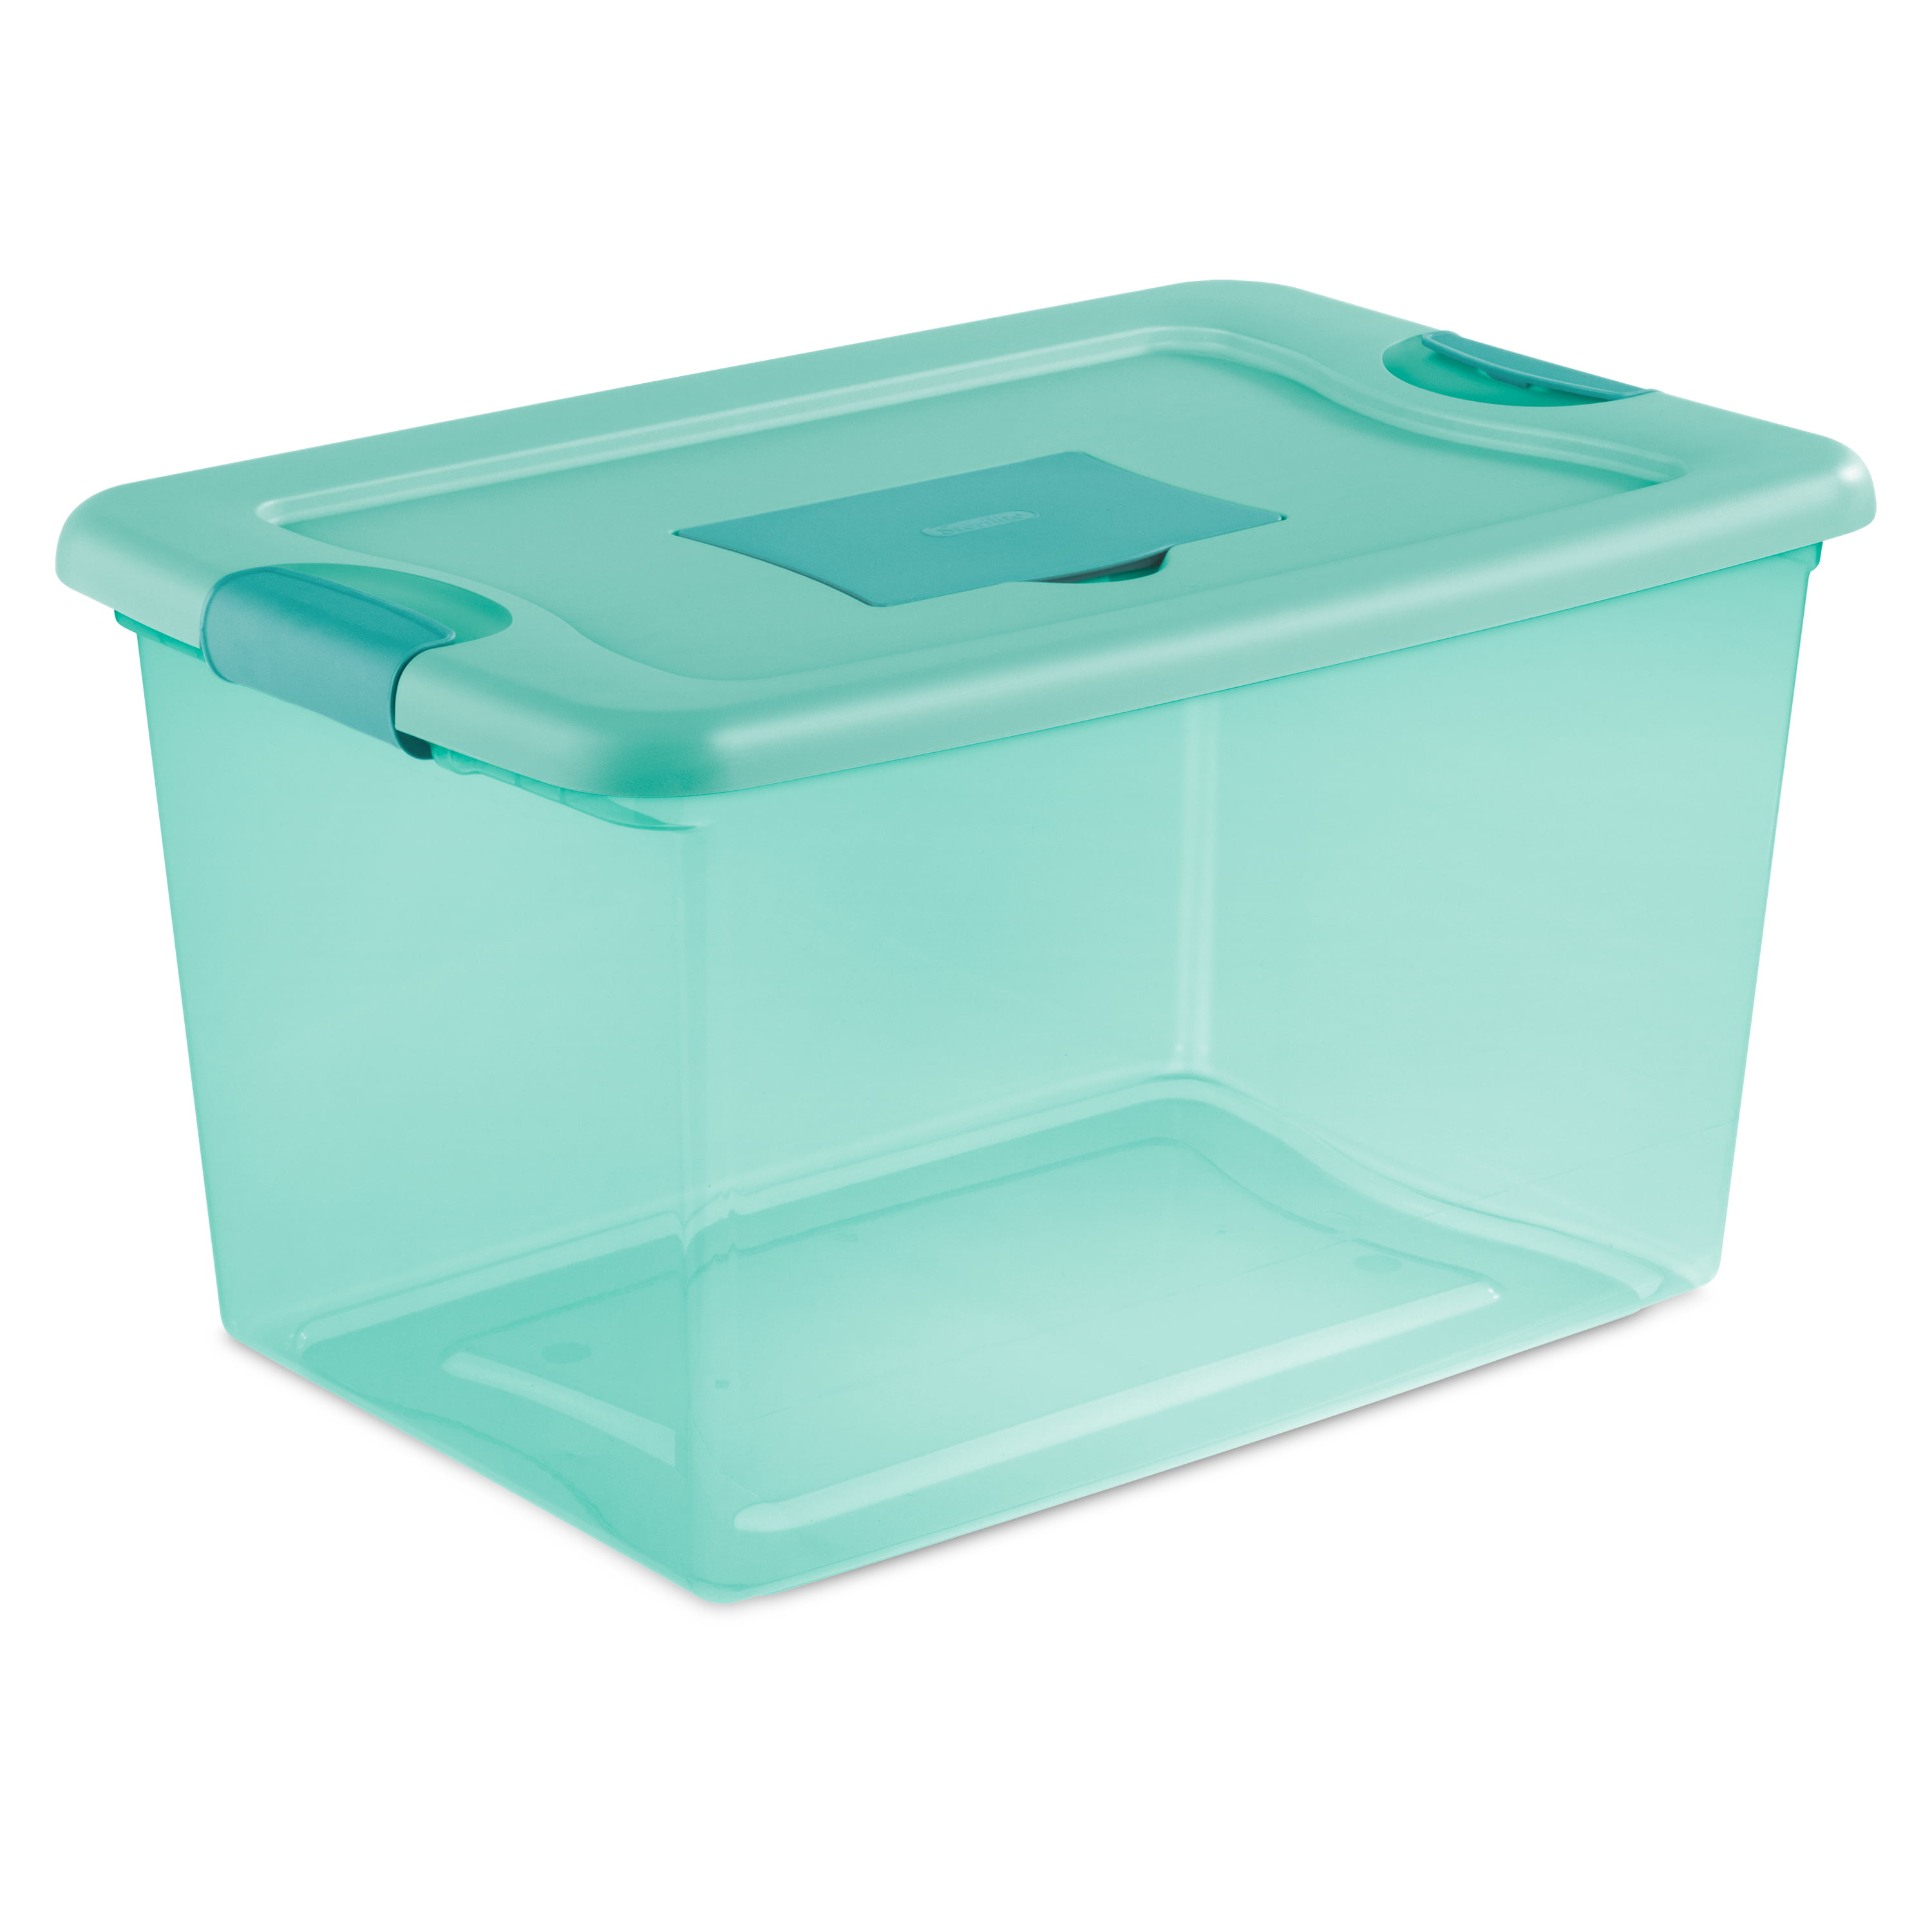 Sterilite 16 Gallon Aqua Tint Fresh Scent Box